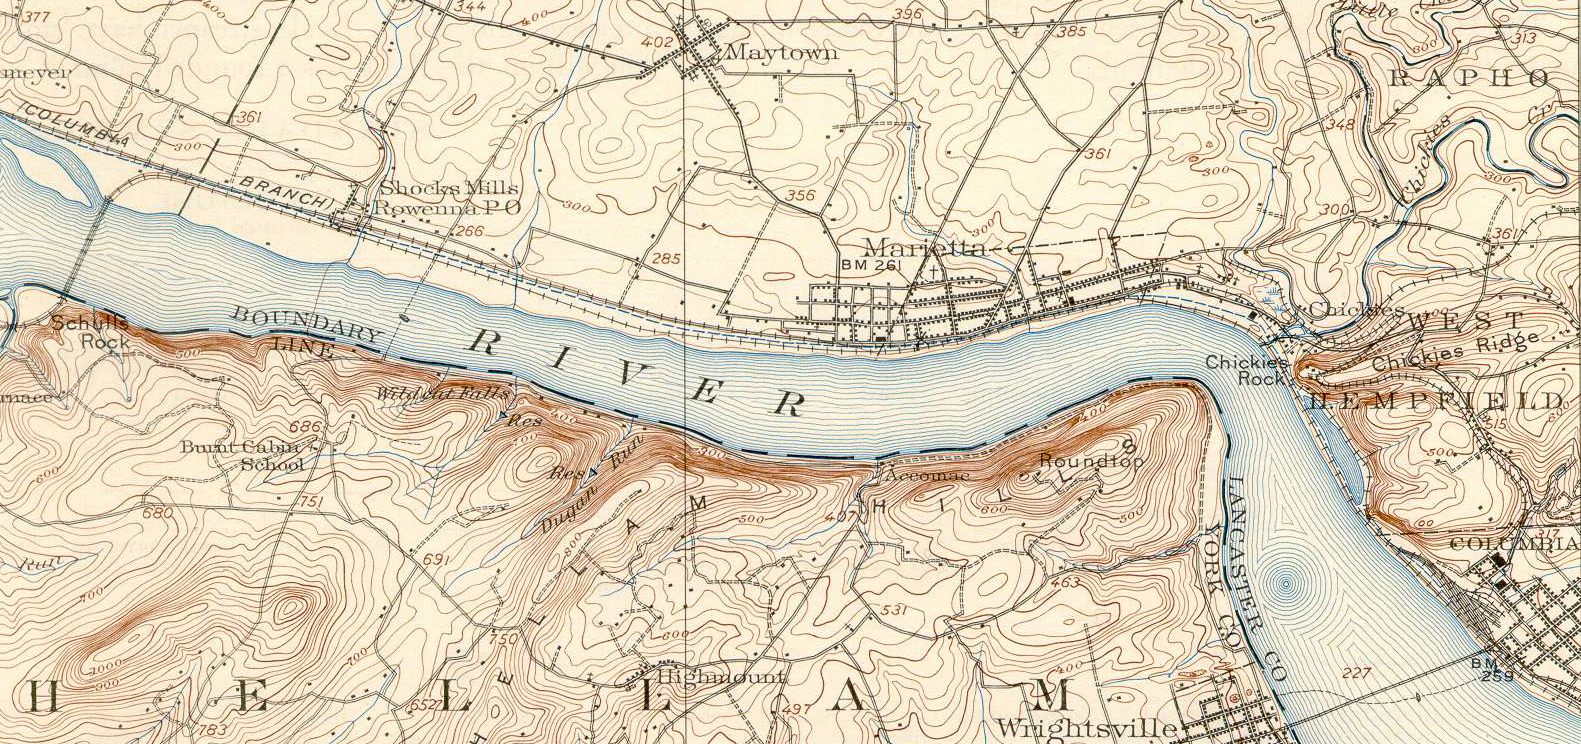 A 1906 USGS topographical map illustrating the former alignments of the PRR, note the newer York Haven line stays close the shore on the Eastern (top) bank of the Susquehanna all the way from Shocks Mills (left) to Columbia (right). This included the fill across a river bend just beneath Hempfield which became known as Kerbaugh Lake. Also noteworthy is the trackage snaking up the inland side of Chickies Ridge, this was the Columbia & Donnegal Electric Railway, a trolley line which operated an amusement park at Chickies Rock.